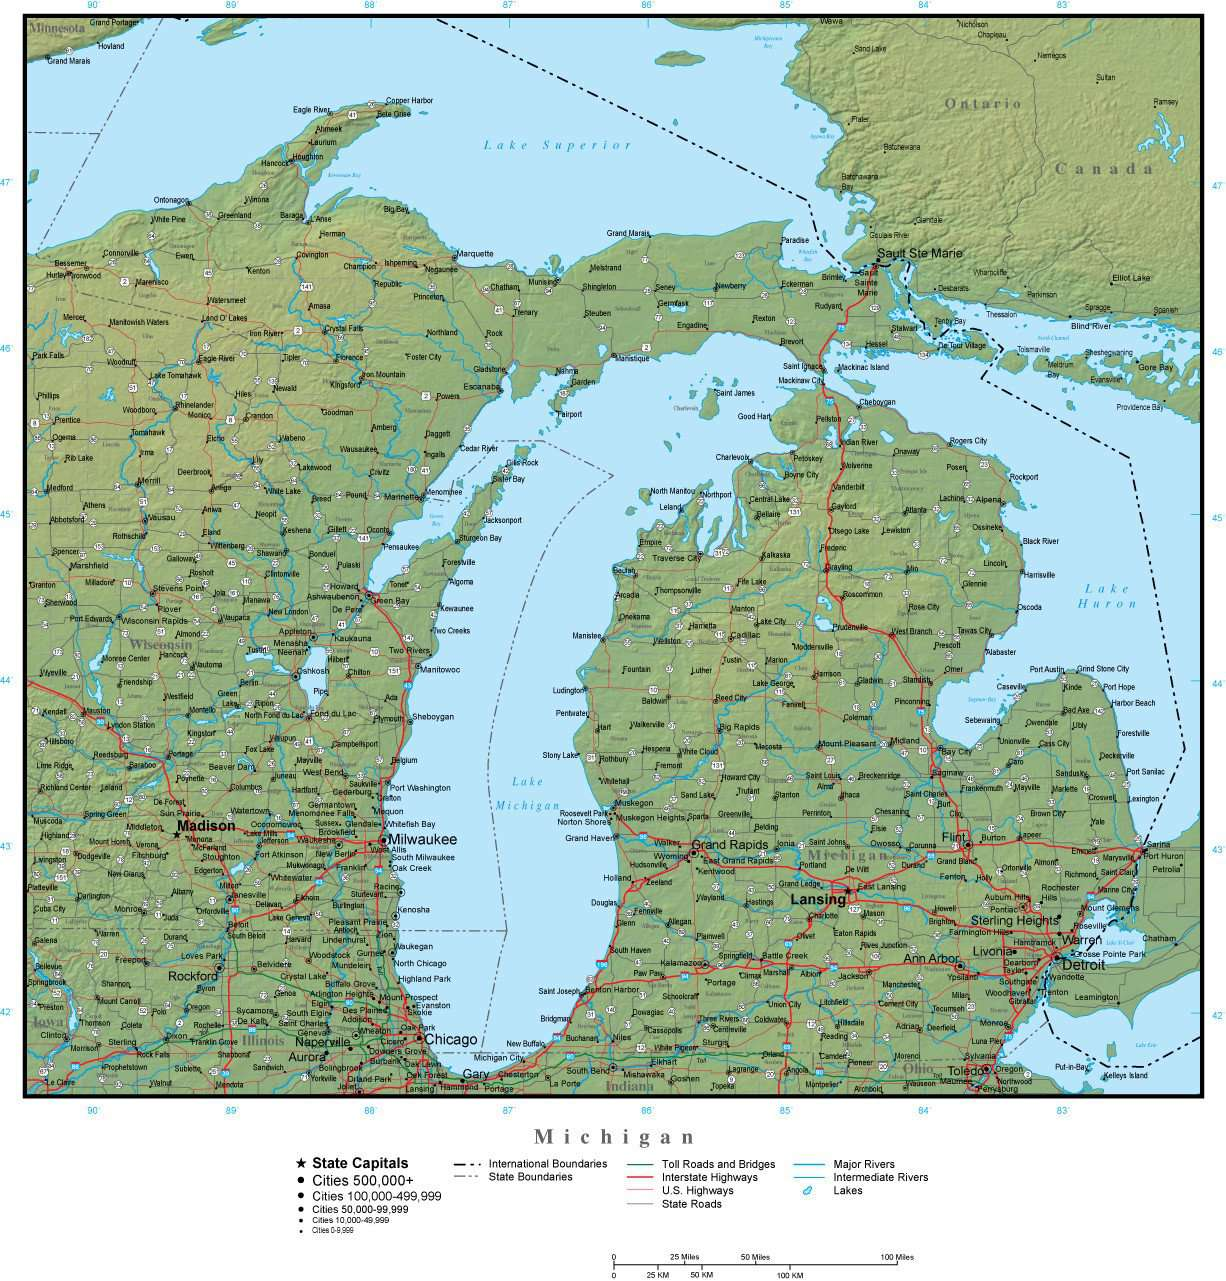 Michigan Map With Cities And Lakes.Michigan State Map Plus Terrain With Cities Roads Map Resources